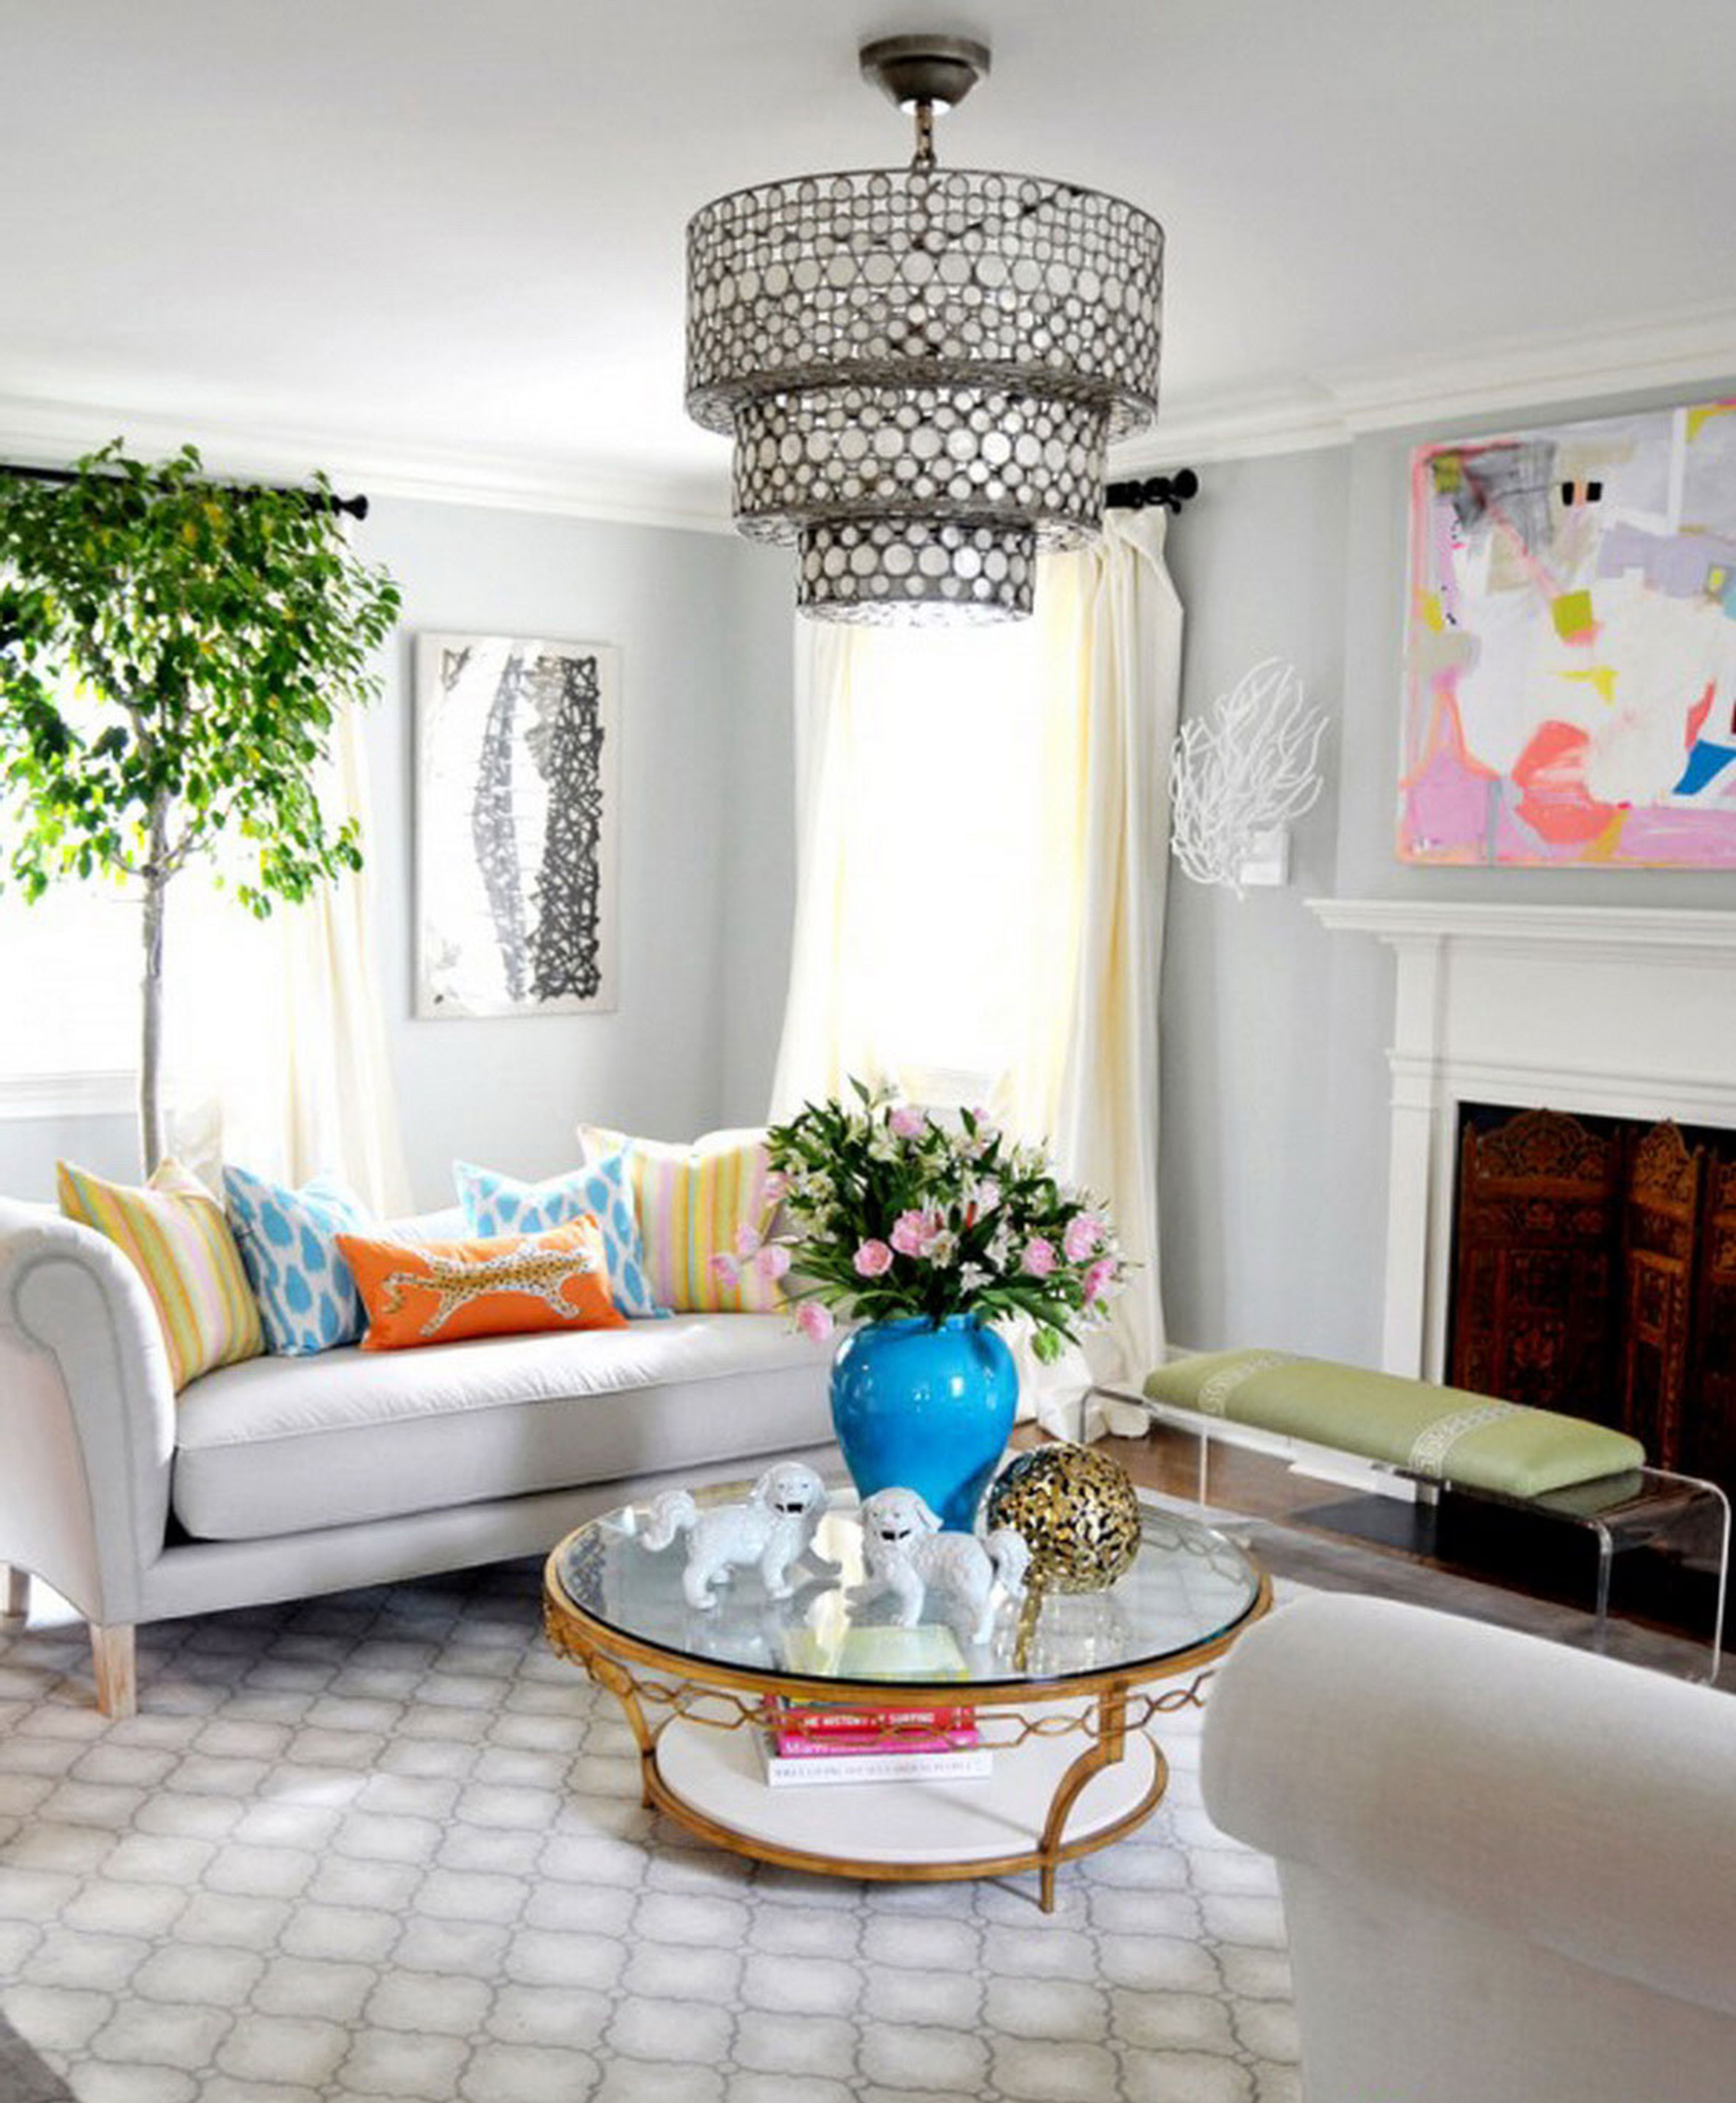 Interior home decorating ideas living room easy on the eye interior home decorating ideas structure lovely